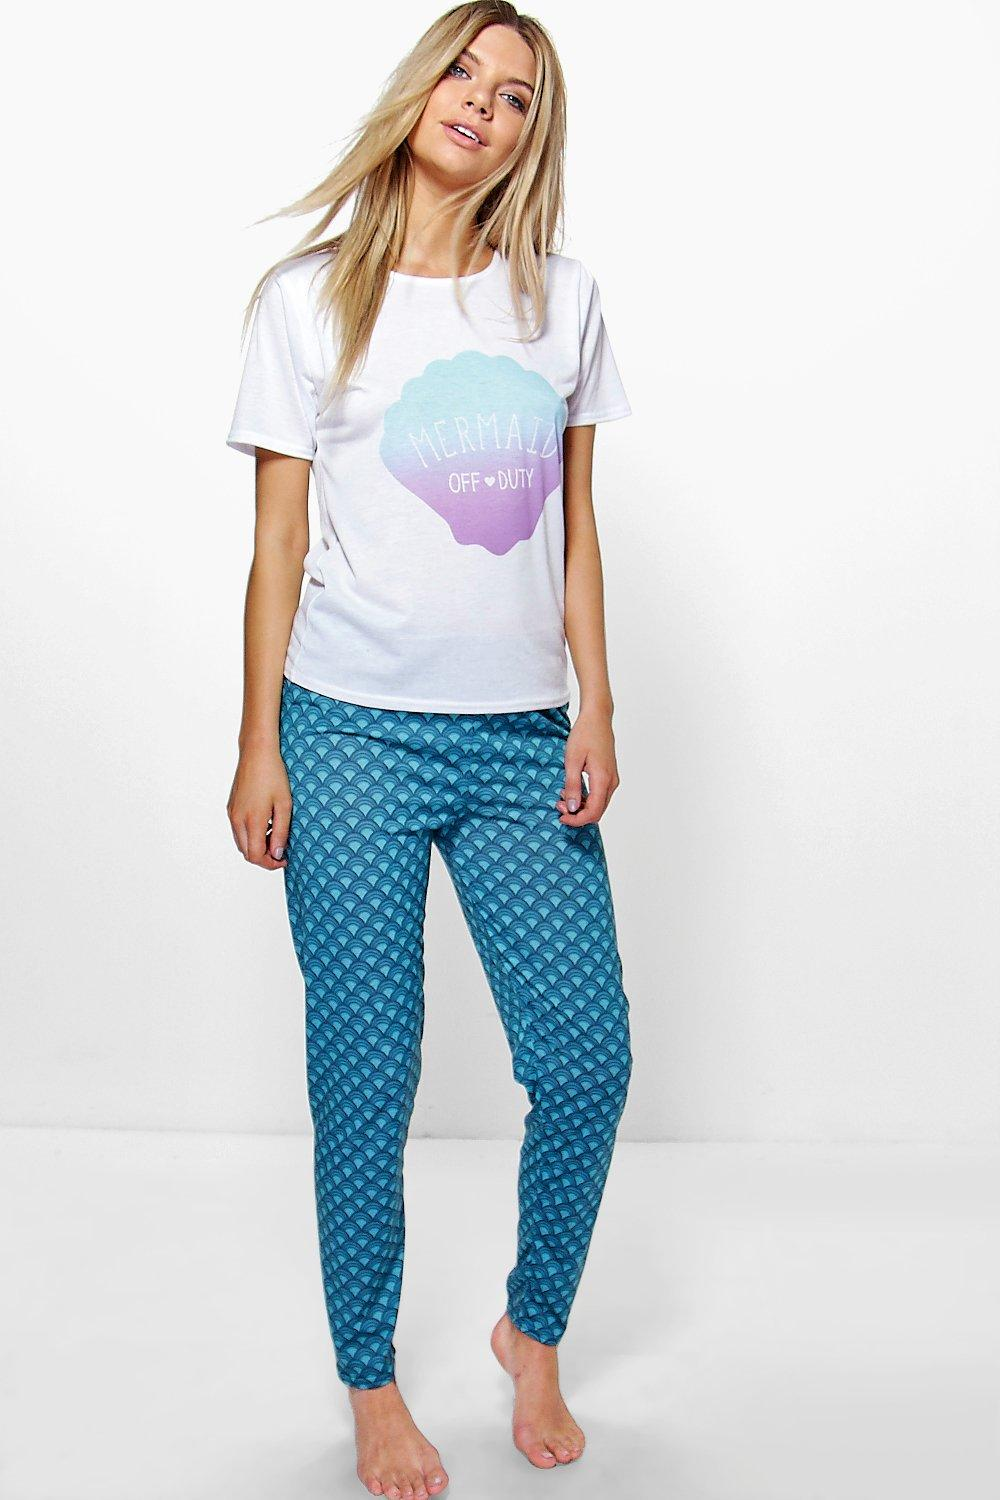 Lara Off Duty Mermaid Tee and Jogger PJ Set